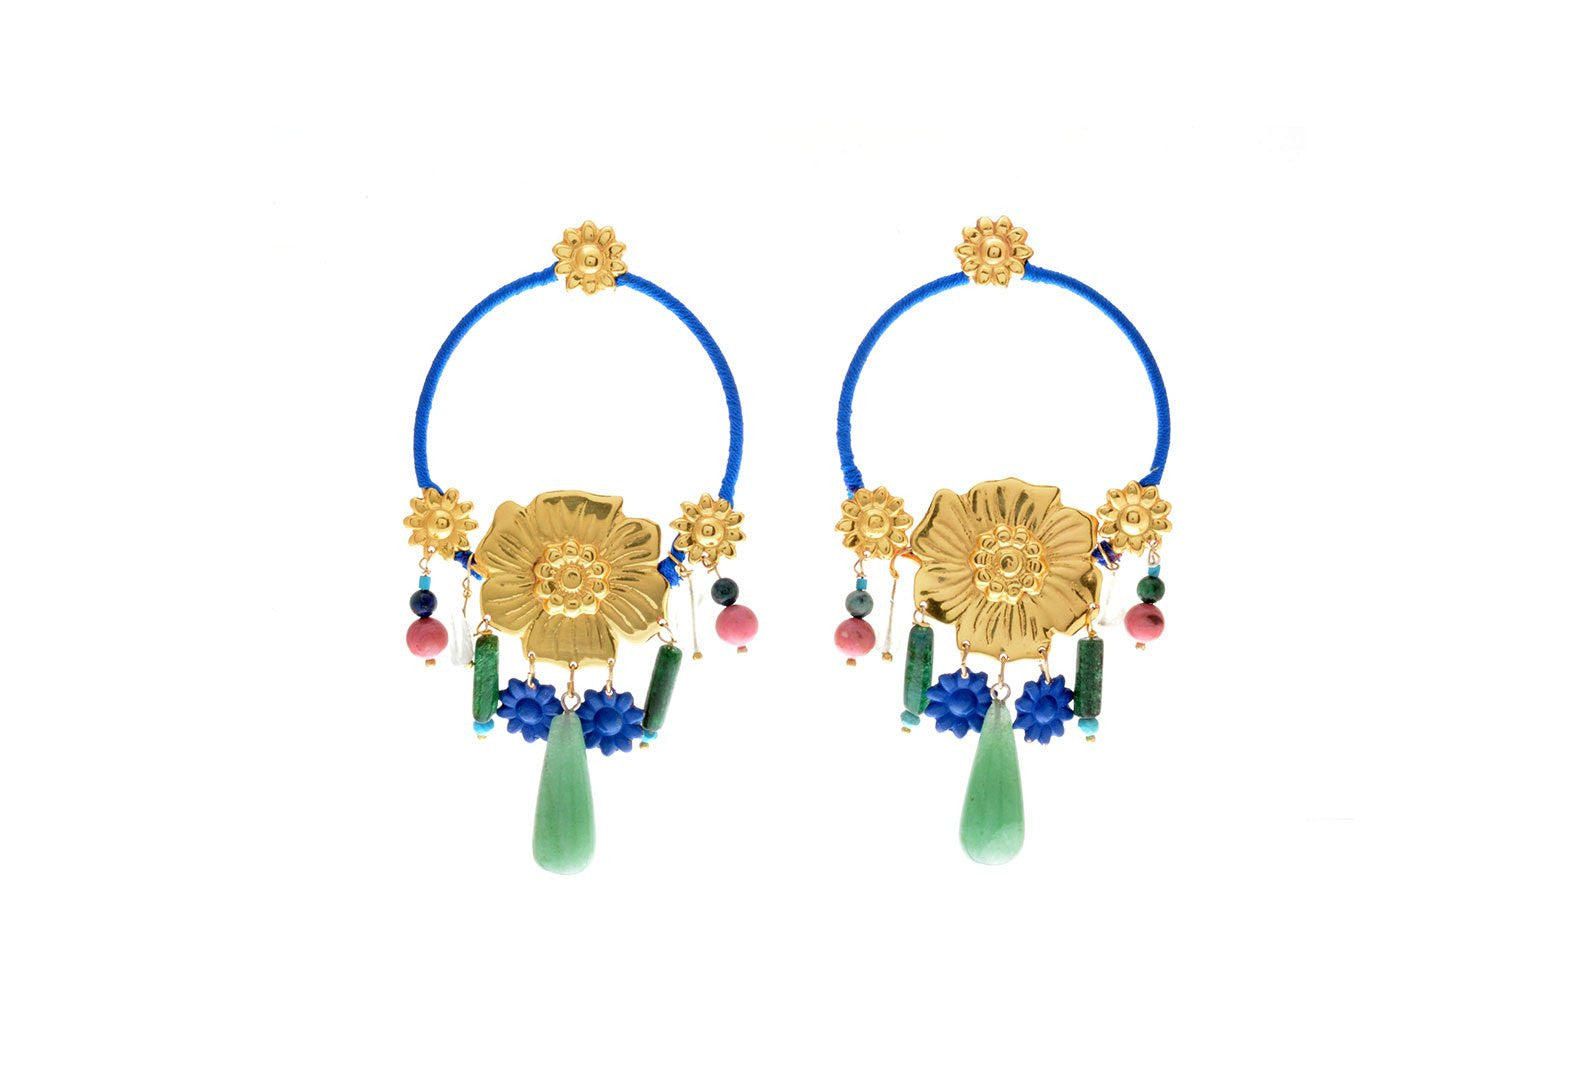 Jardin Secreto Laguna Earrings - Lesetta